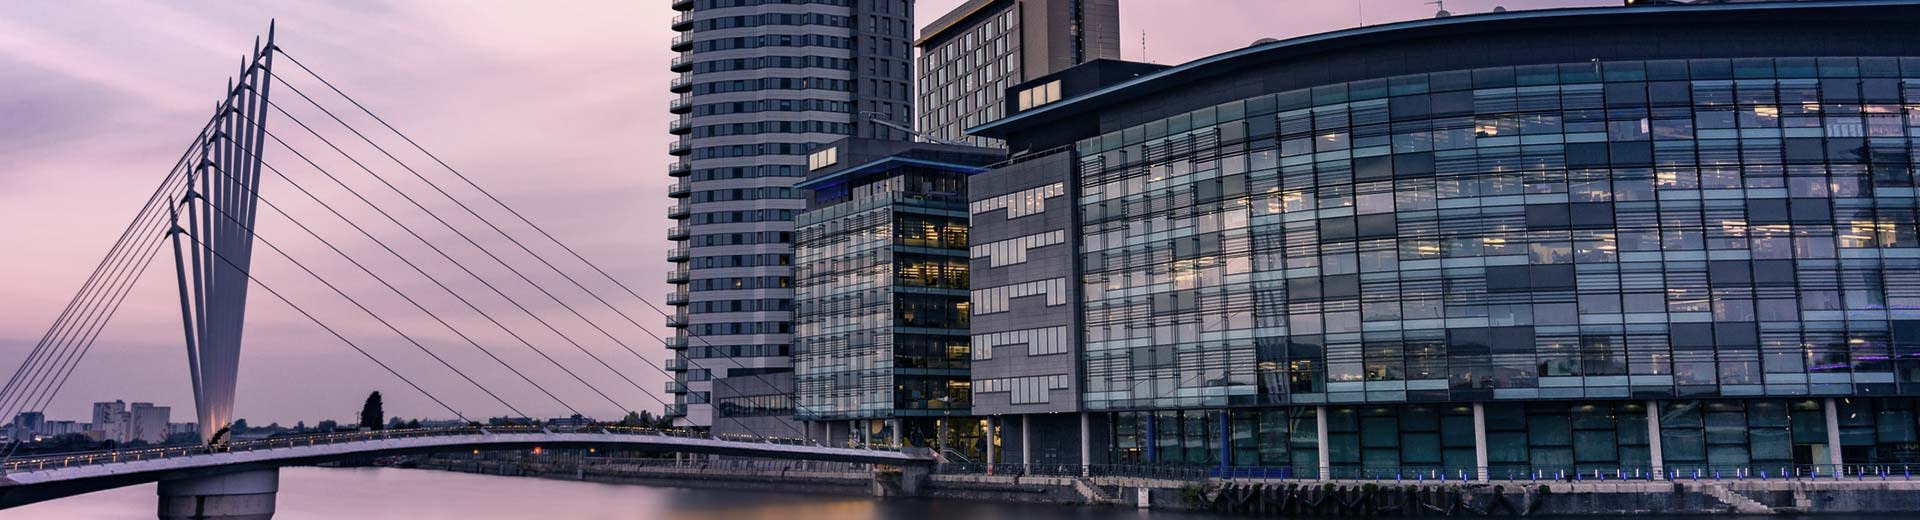 Commercial buildings and a modern bridge in Manchester